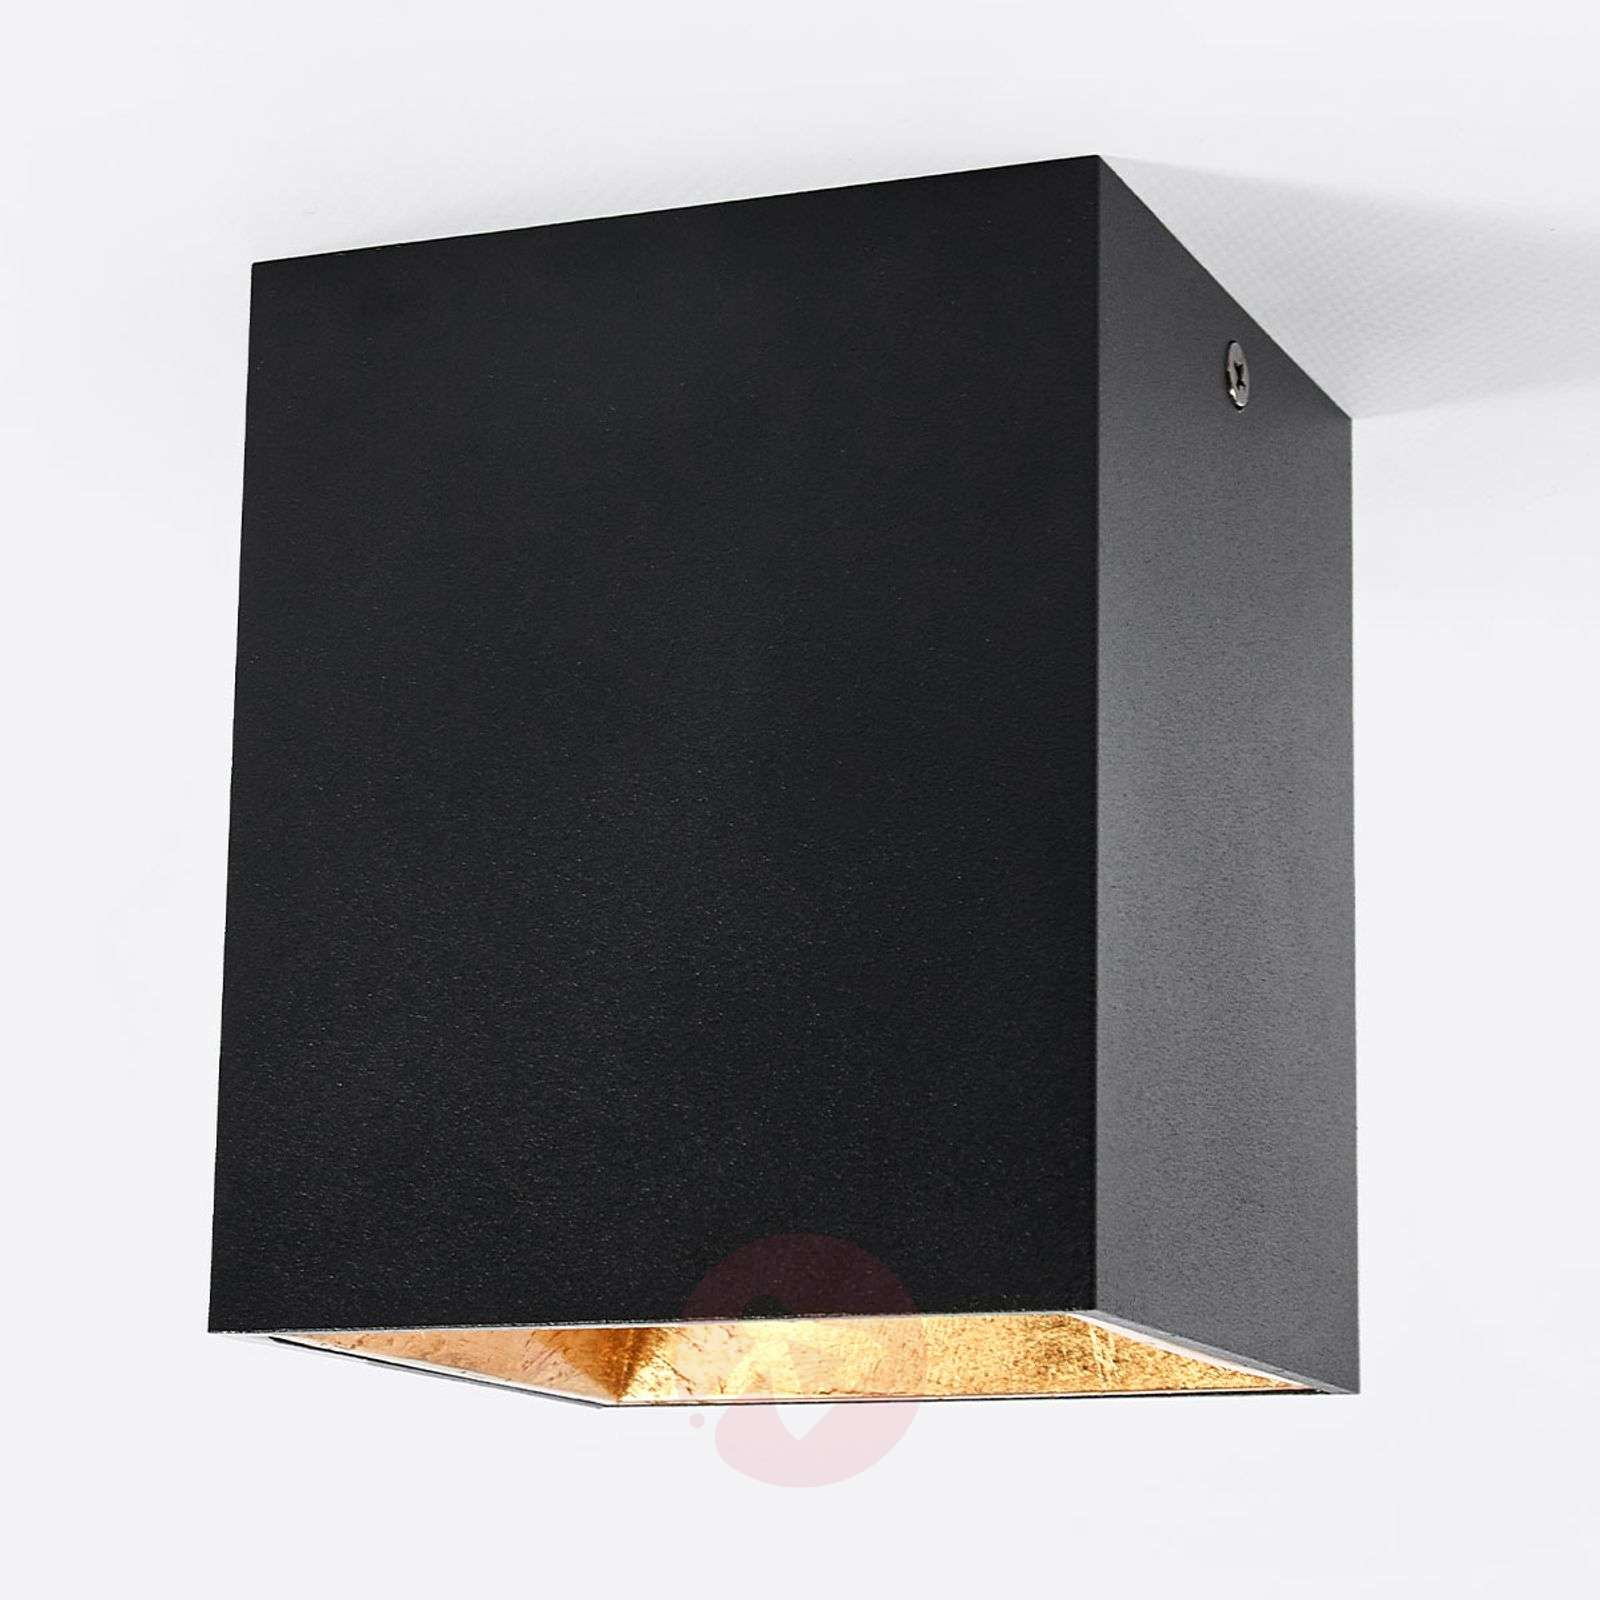 Cube-shaped LED ceiling light Juma, black and gold-3035009-02